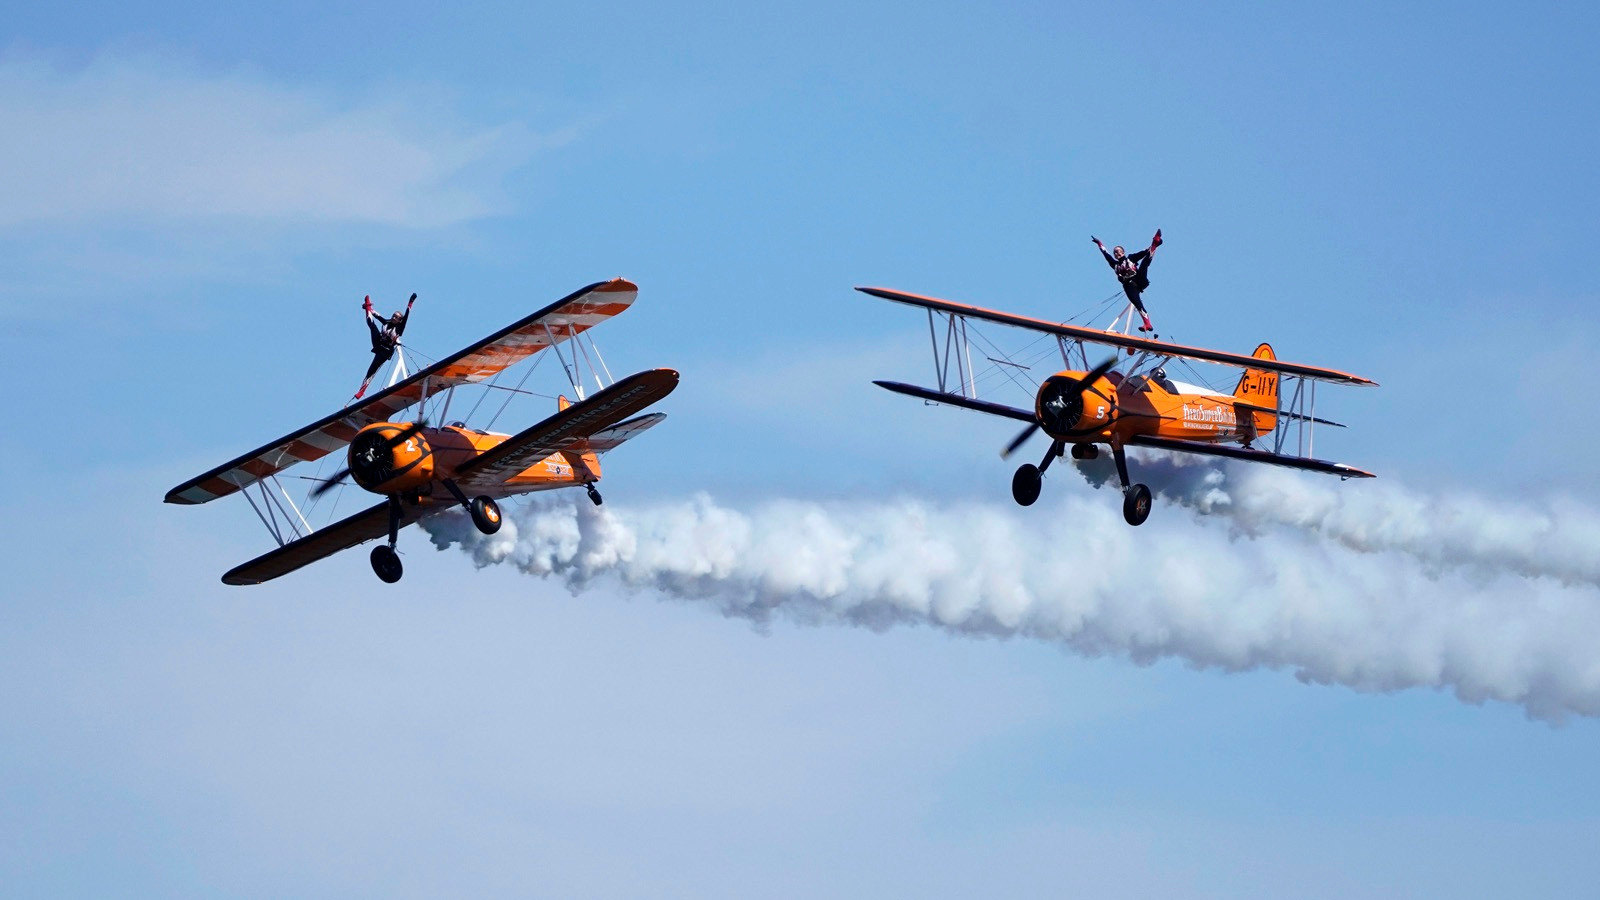 PDI - Wing Walkers by Rowland White (9 marks)